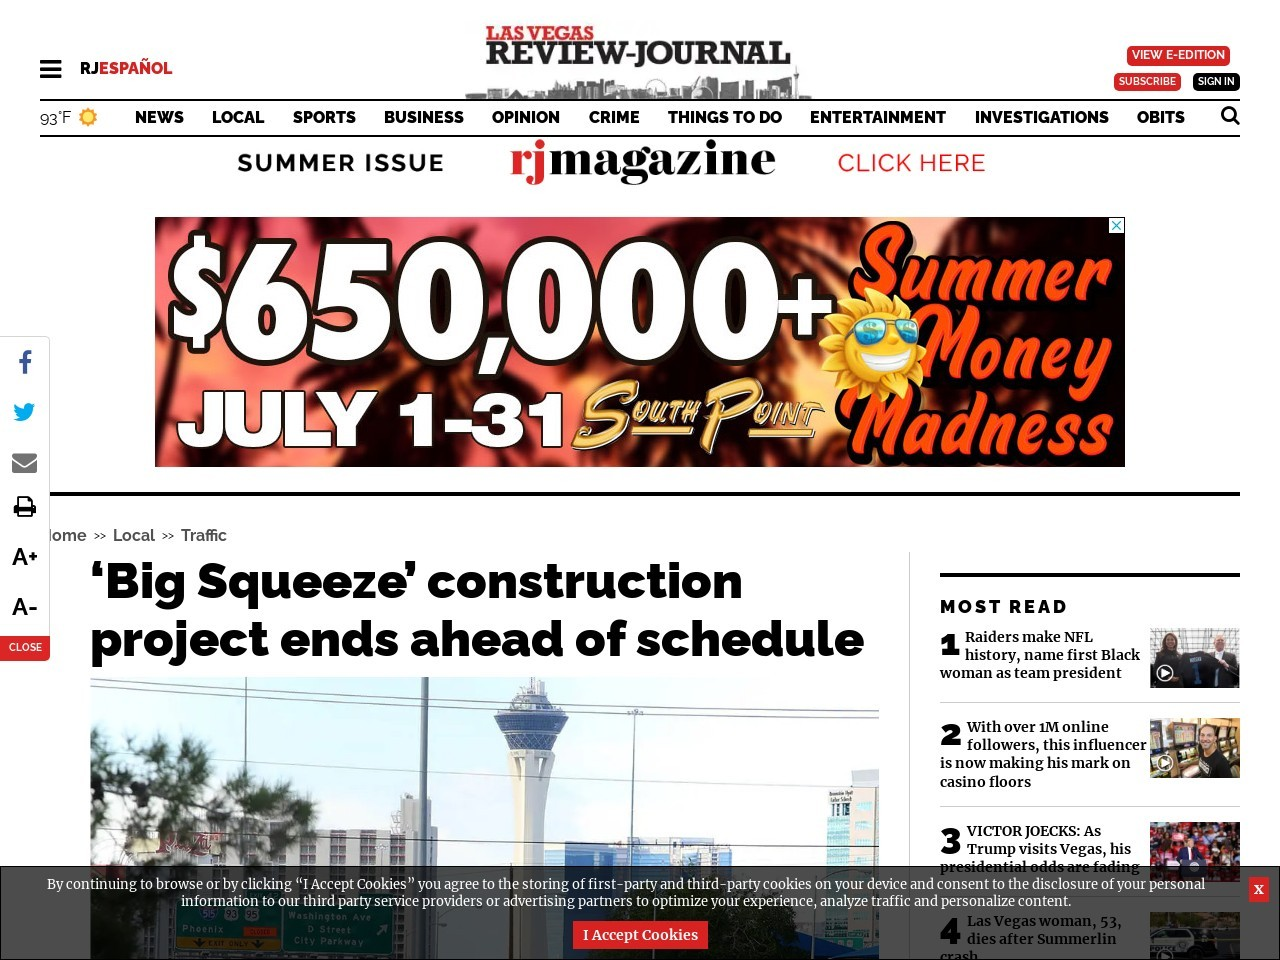 'Big Squeeze' construction project ends ahead of schedule